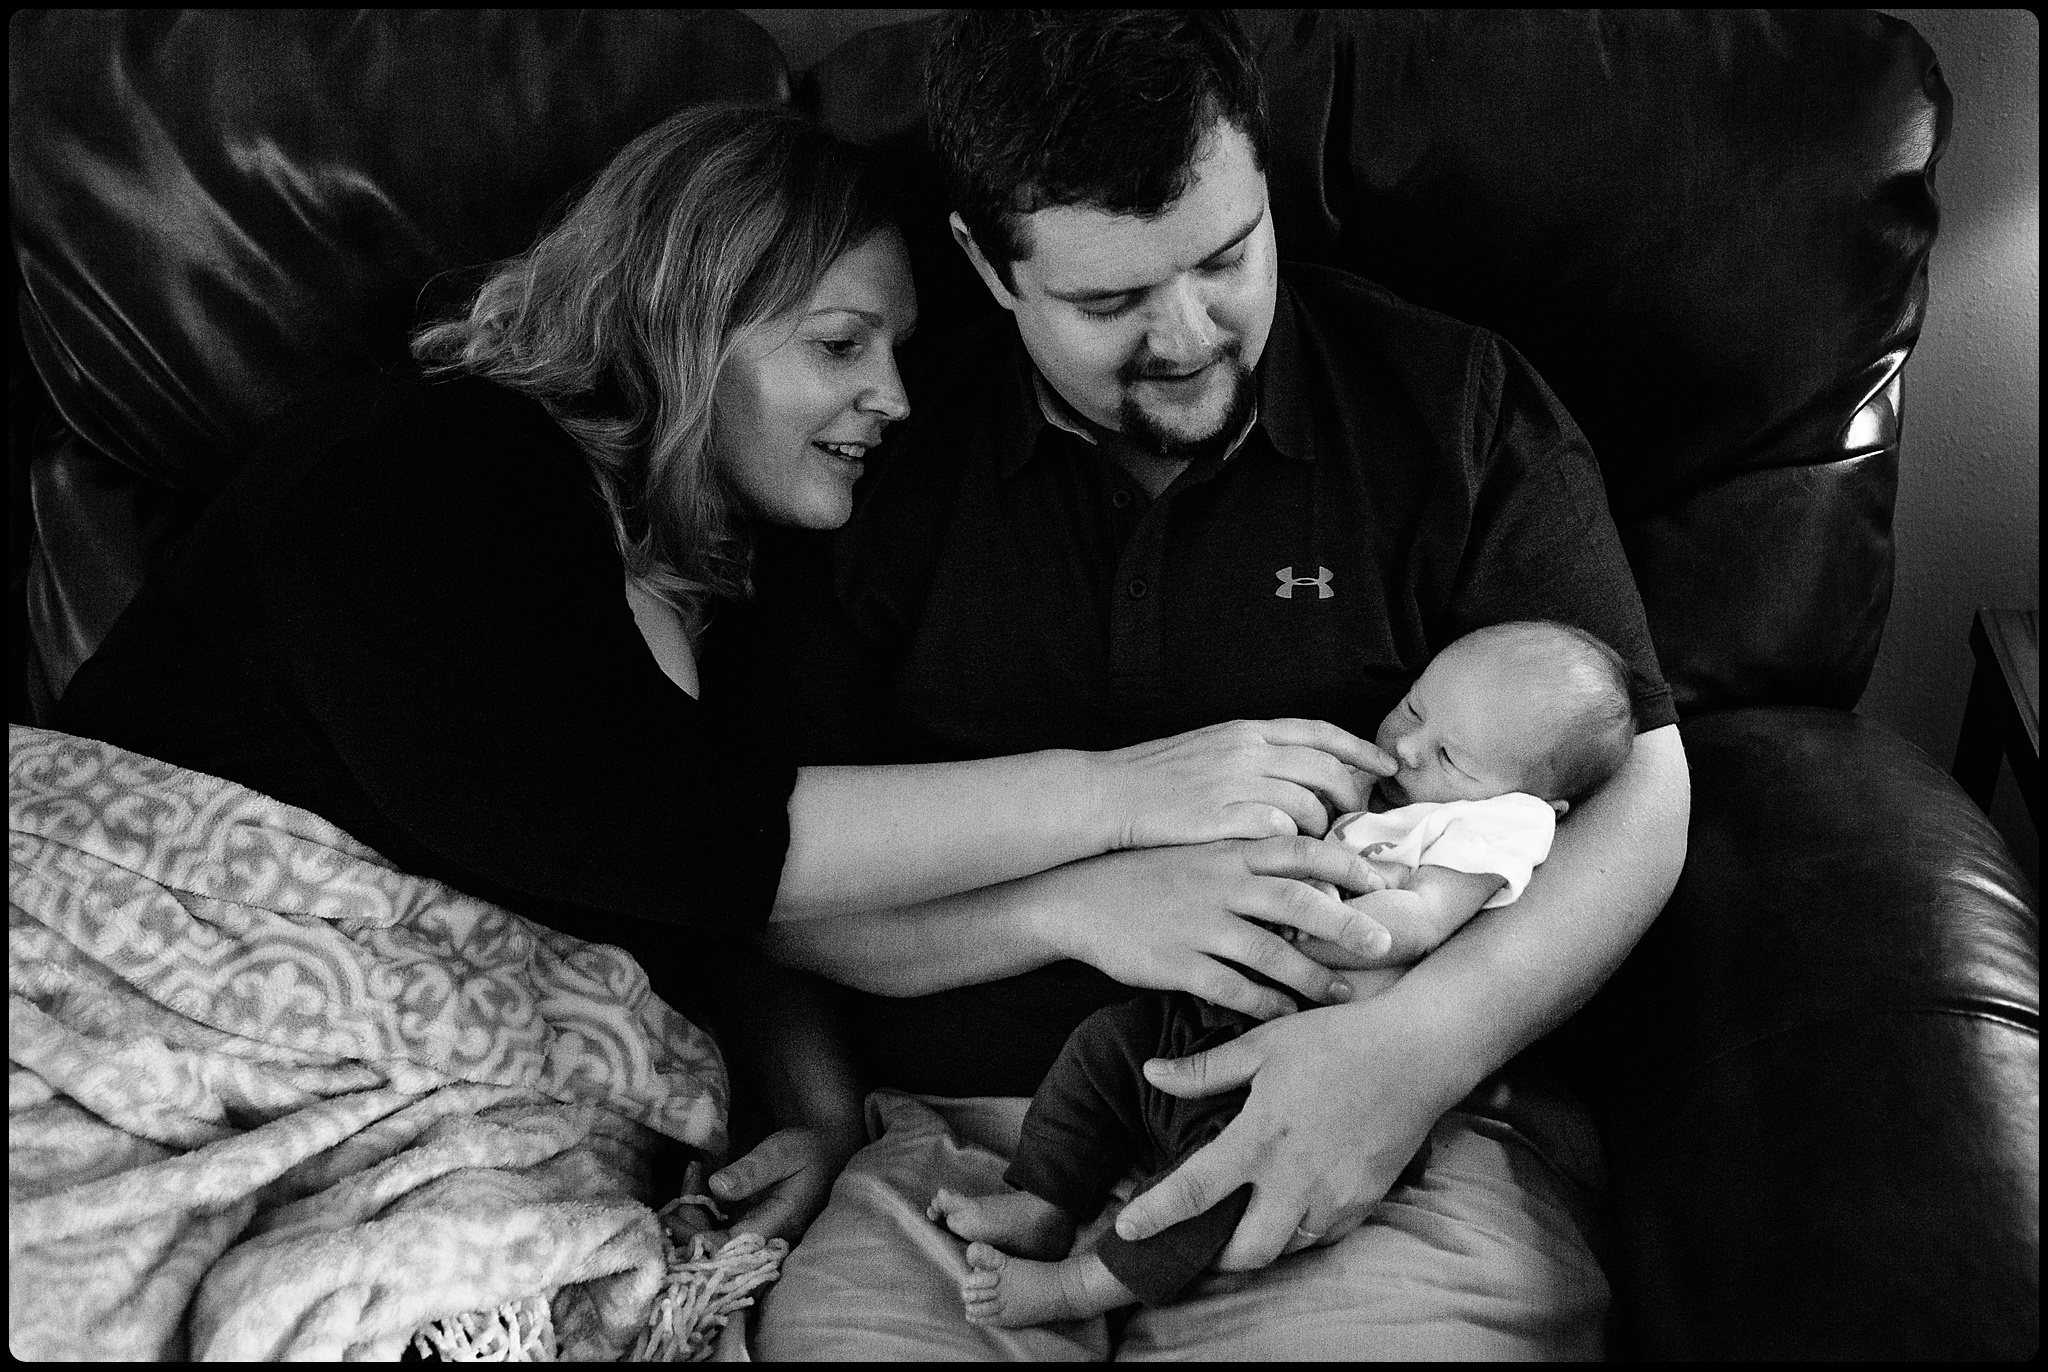 Wisconsin_Rapids_Family_Pictures_Bobbi_K_Photography.jpg_0044.jpg